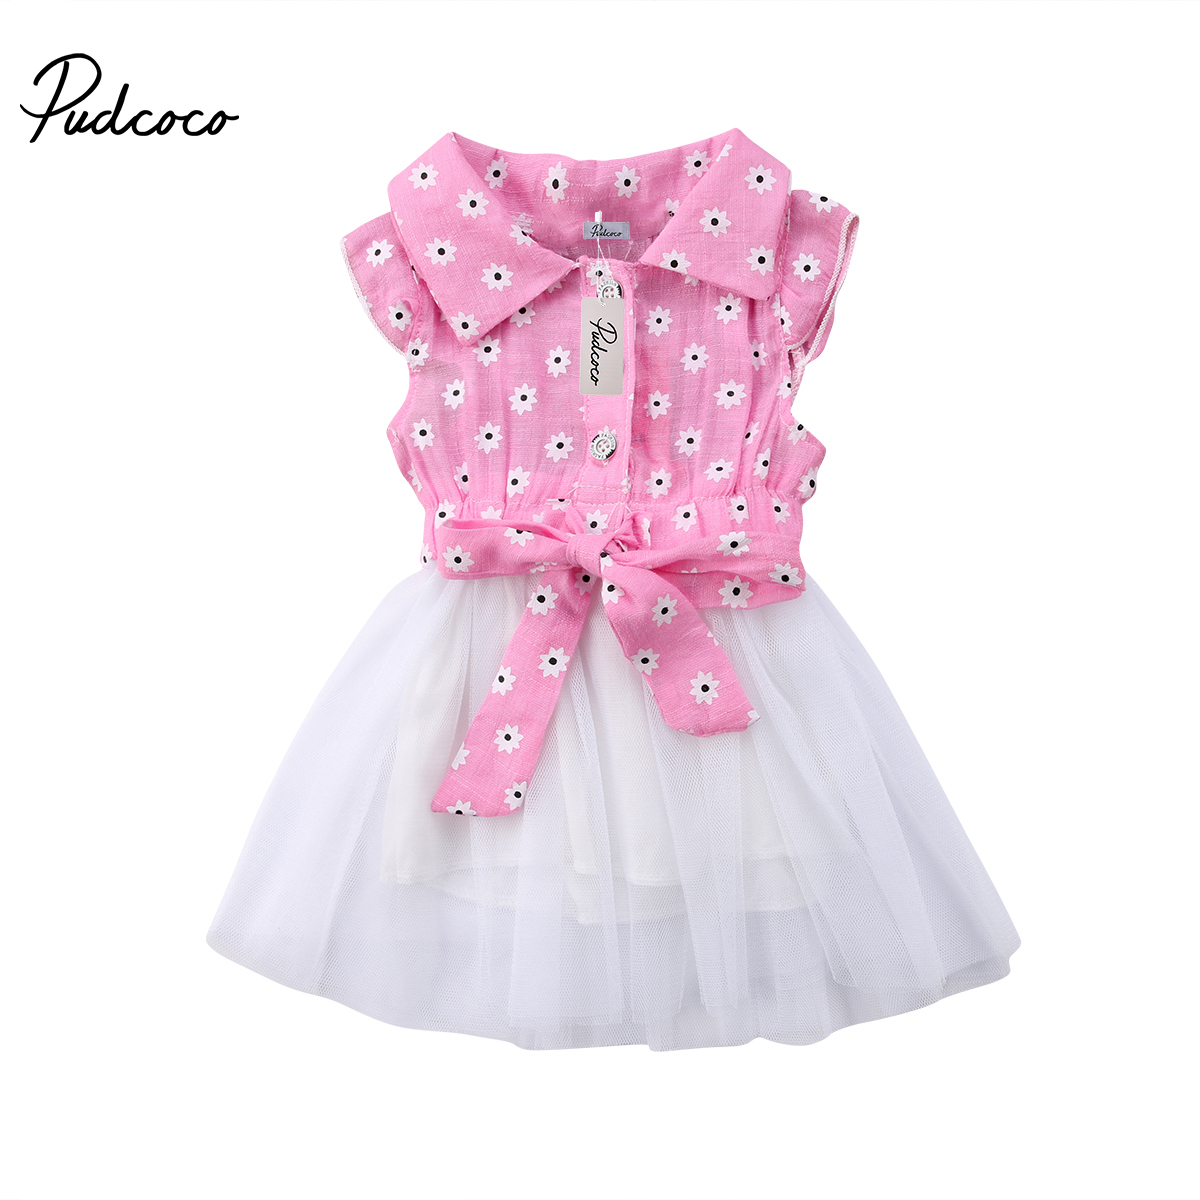 New Cute Girl Princess Dress Newborn Kids Baby Girls Floral Bowknot Lace Tulle Dress Infant Summer Party Mini Dress